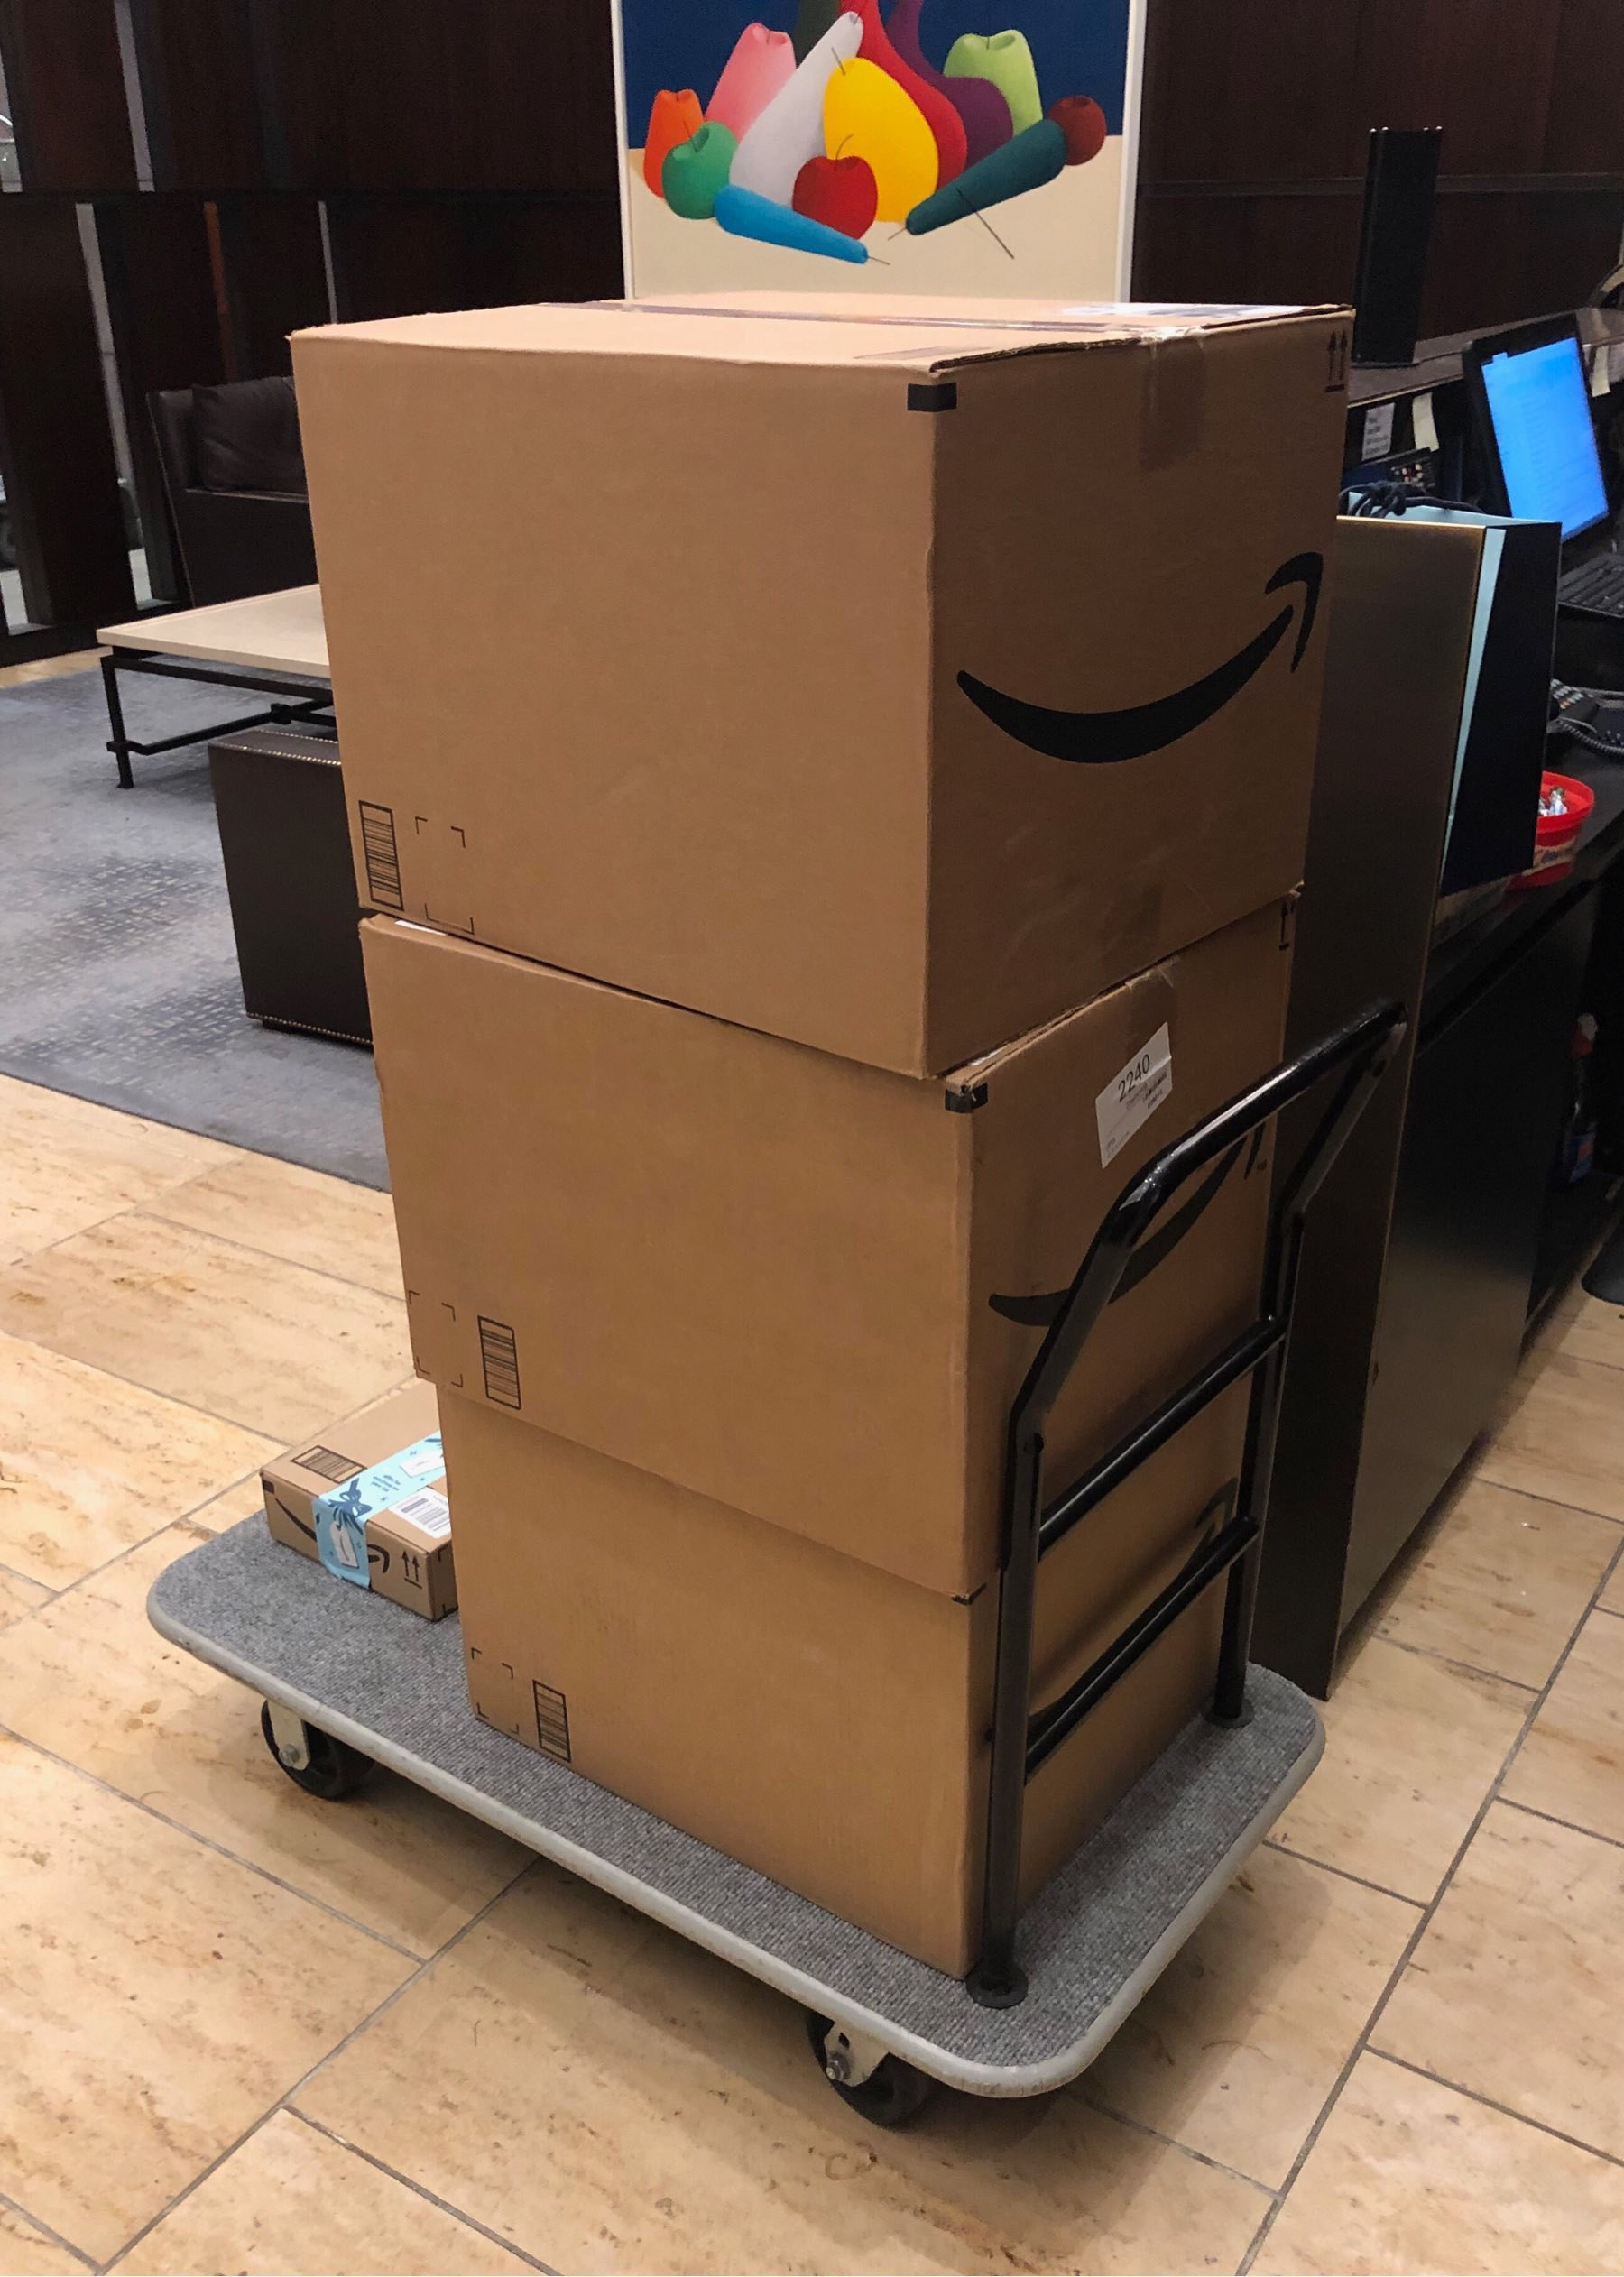 Three large amazon boxes on a rolling cart.